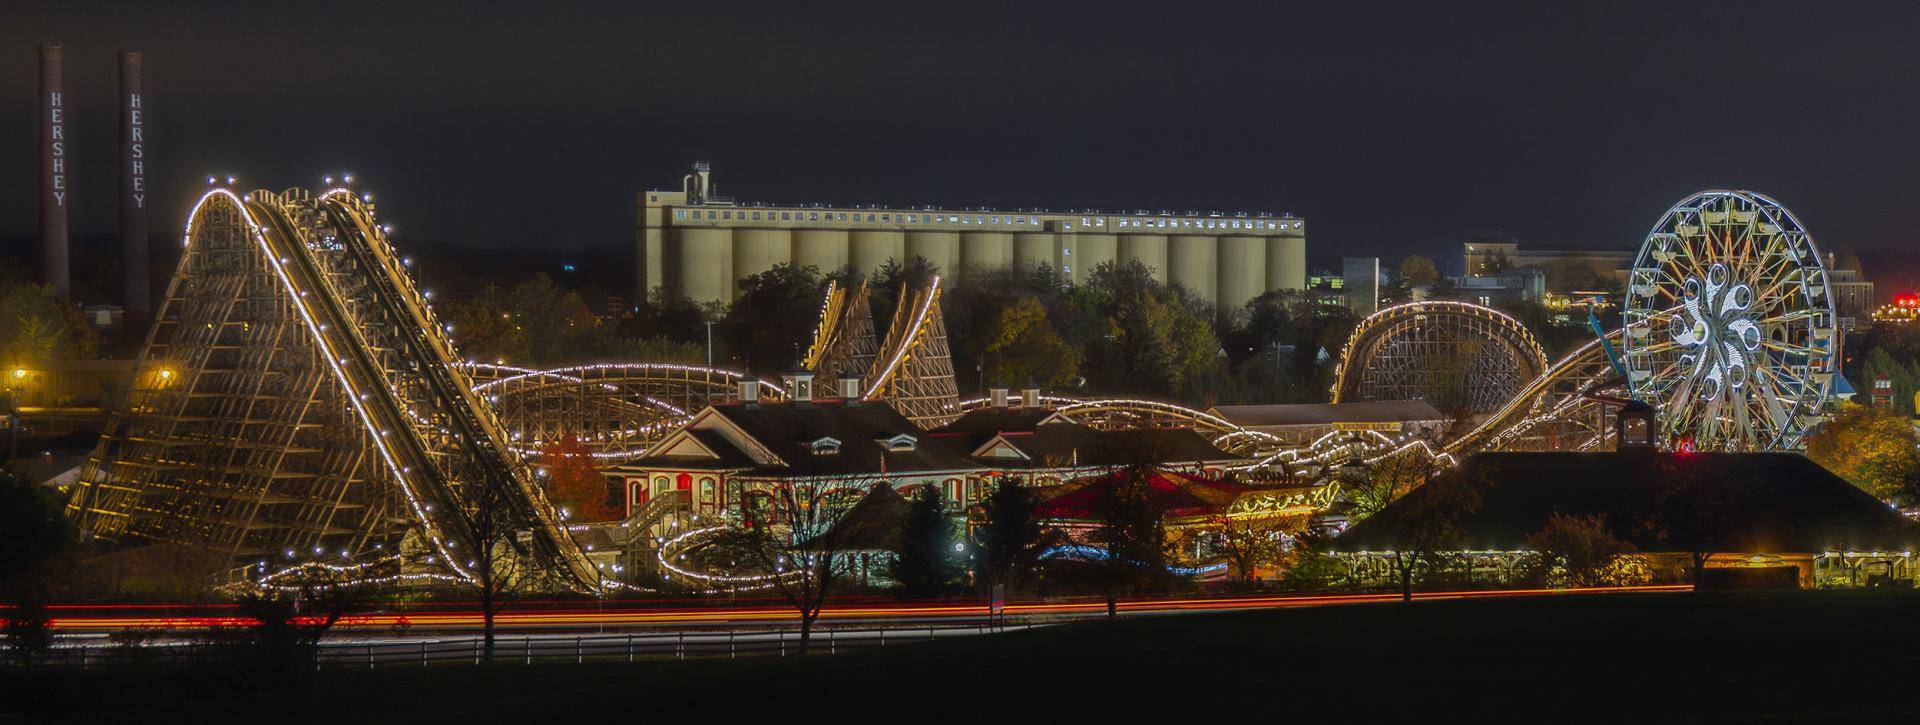 Hershey carnival with lights at night